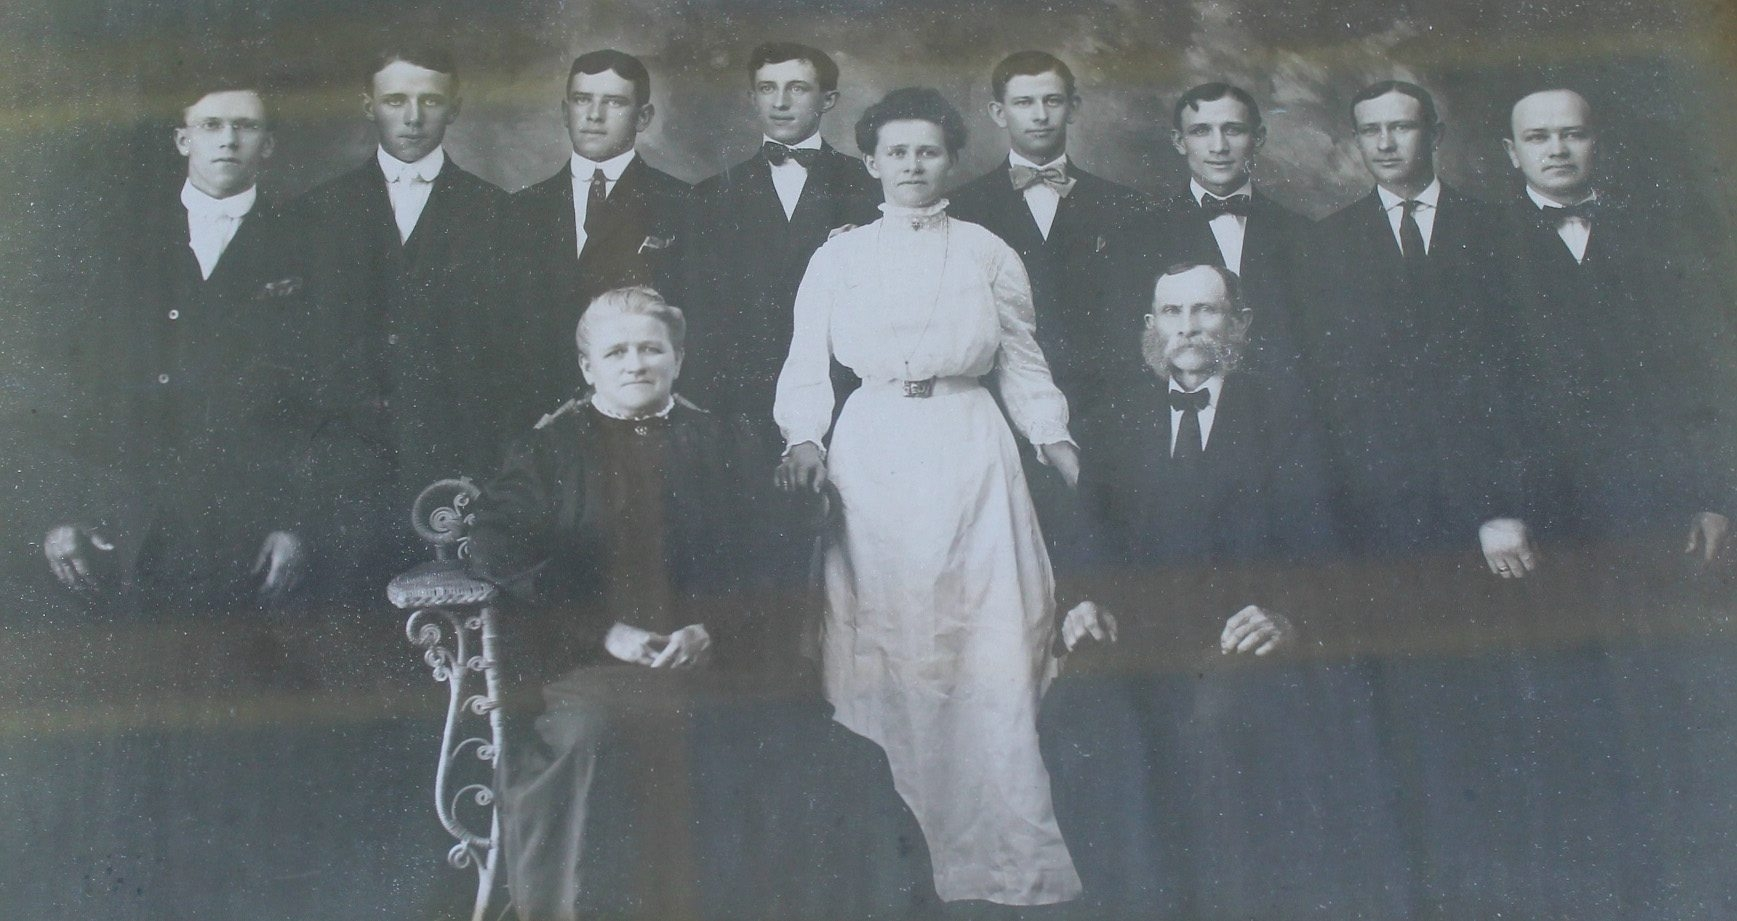 Carl Gotthilf Camann, front right, and his wife, Emilie Grassmann Camann, were the patriarch and matriarch of the family that founded the hamlet of Bergholz.